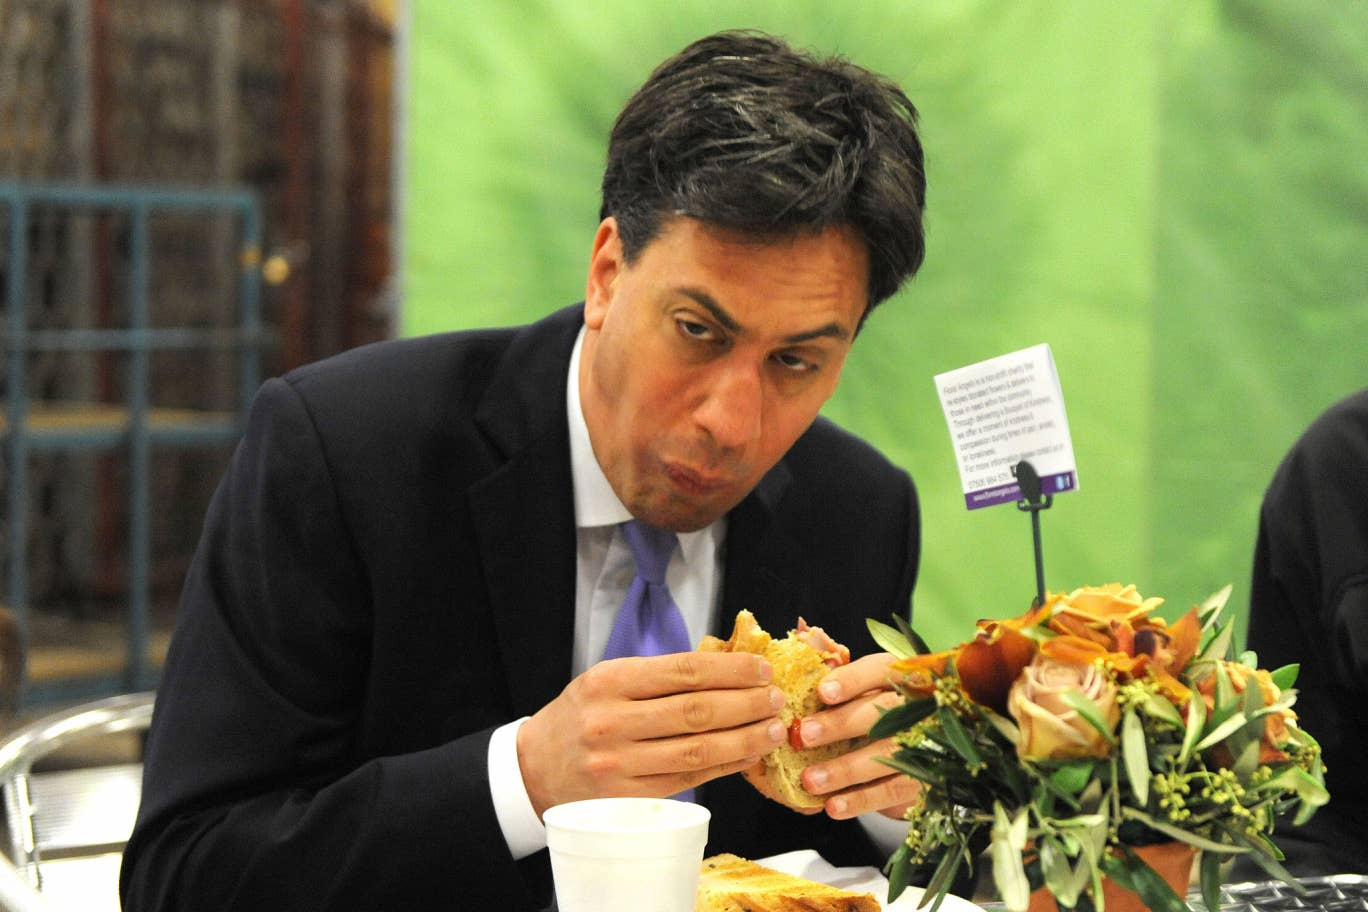 Ed Miliband embarked on a whirlwind campaign tour of England - but struggled at the first hurdle of a bacon sandwich